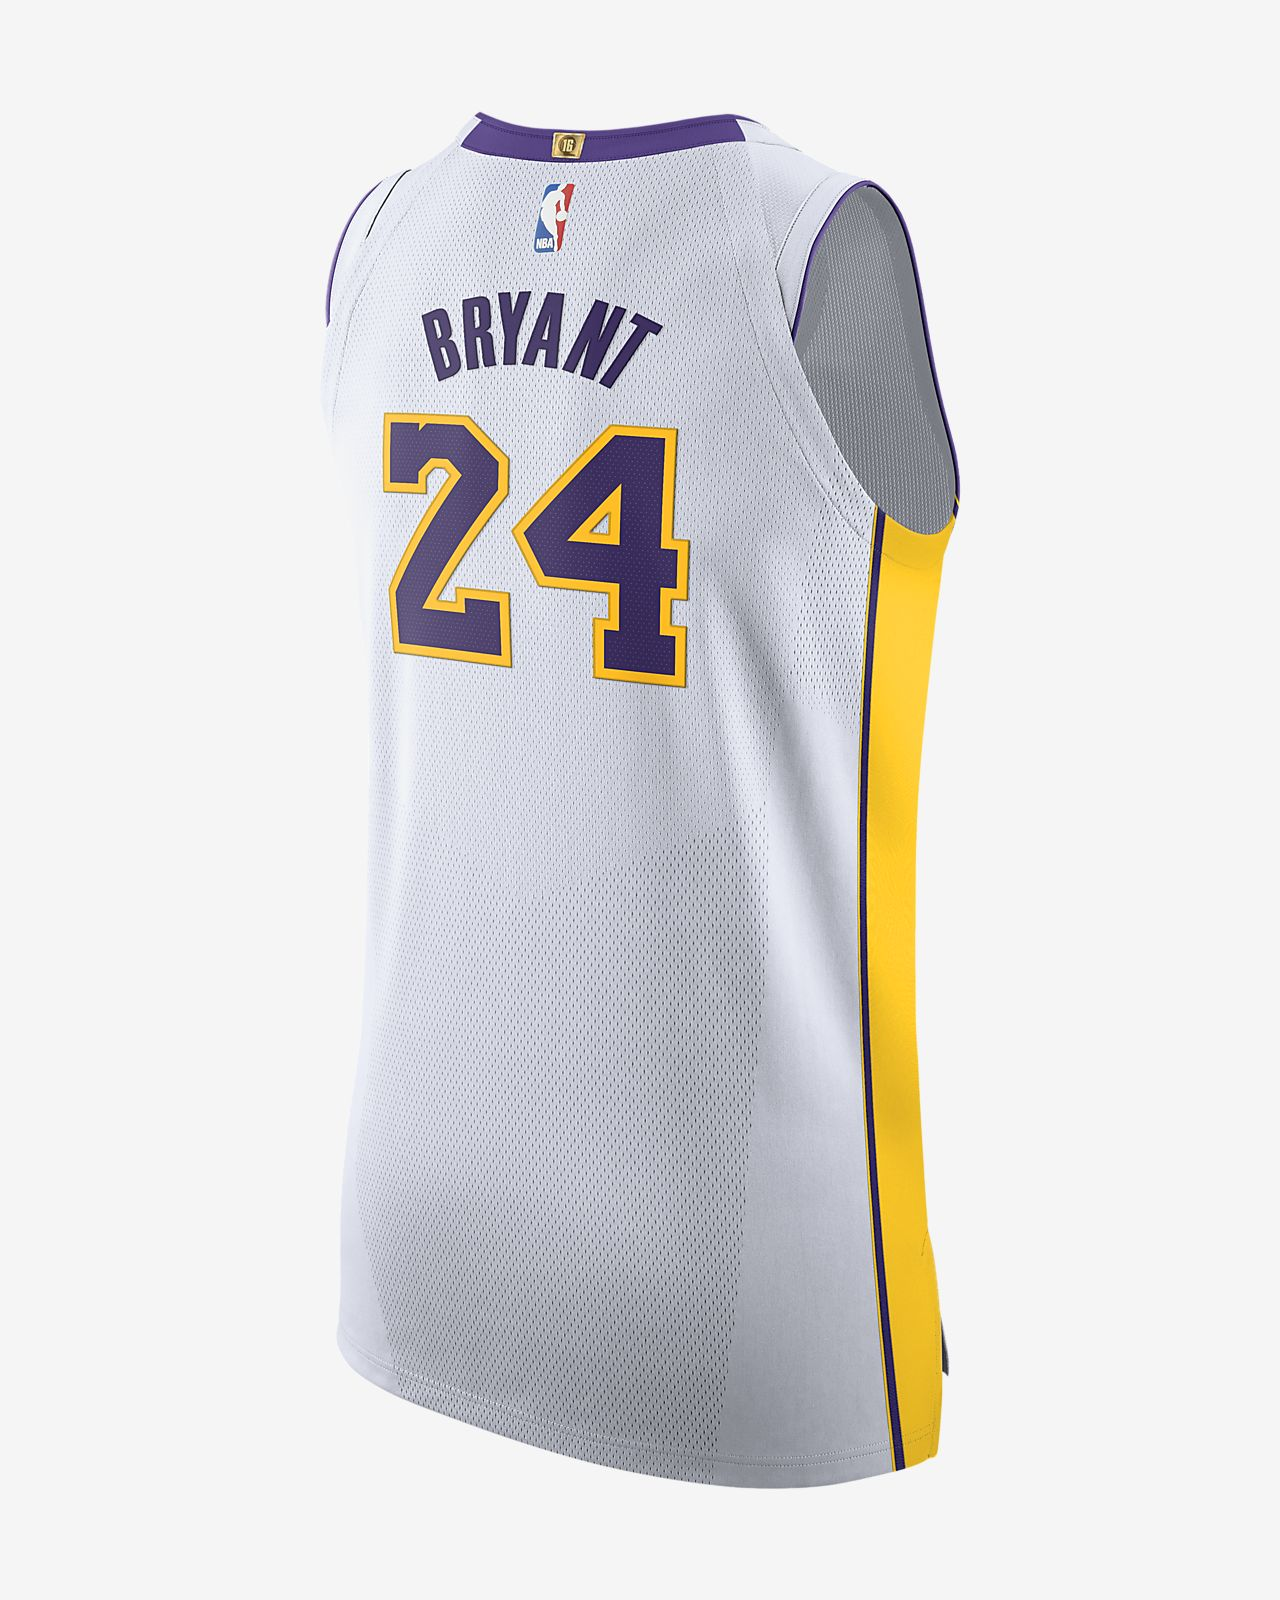 926cc356c46e Men s Nike NBA Connected Jersey. Kobe Bryant Association Edition Authentic  (Los Angeles Lakers)